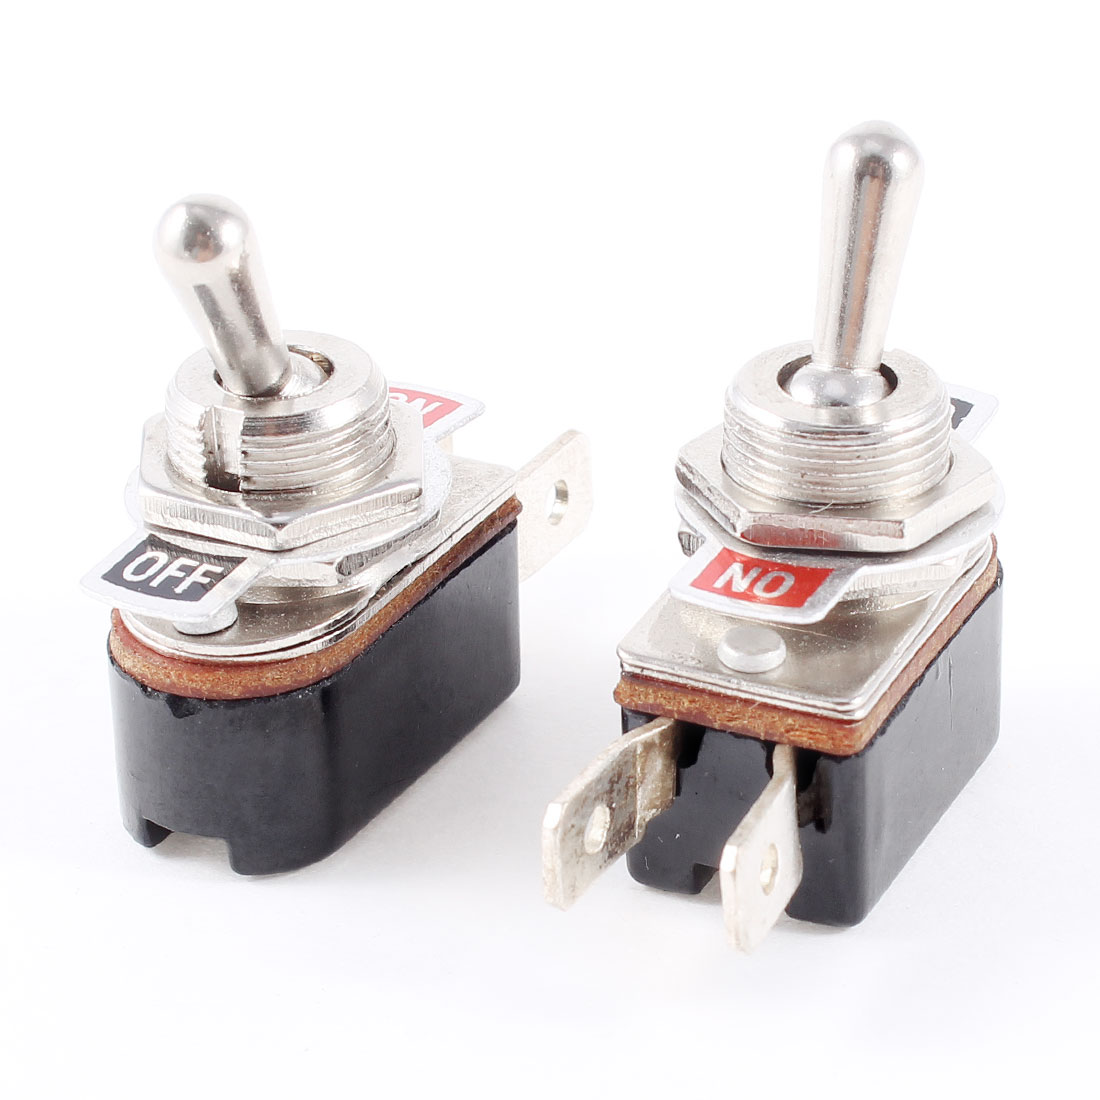 AC 6A/125V 3A/250V 2 Terminal SPST ON-OFF 2 Position Toggle Switch 2 Pcs - image 1 de 1